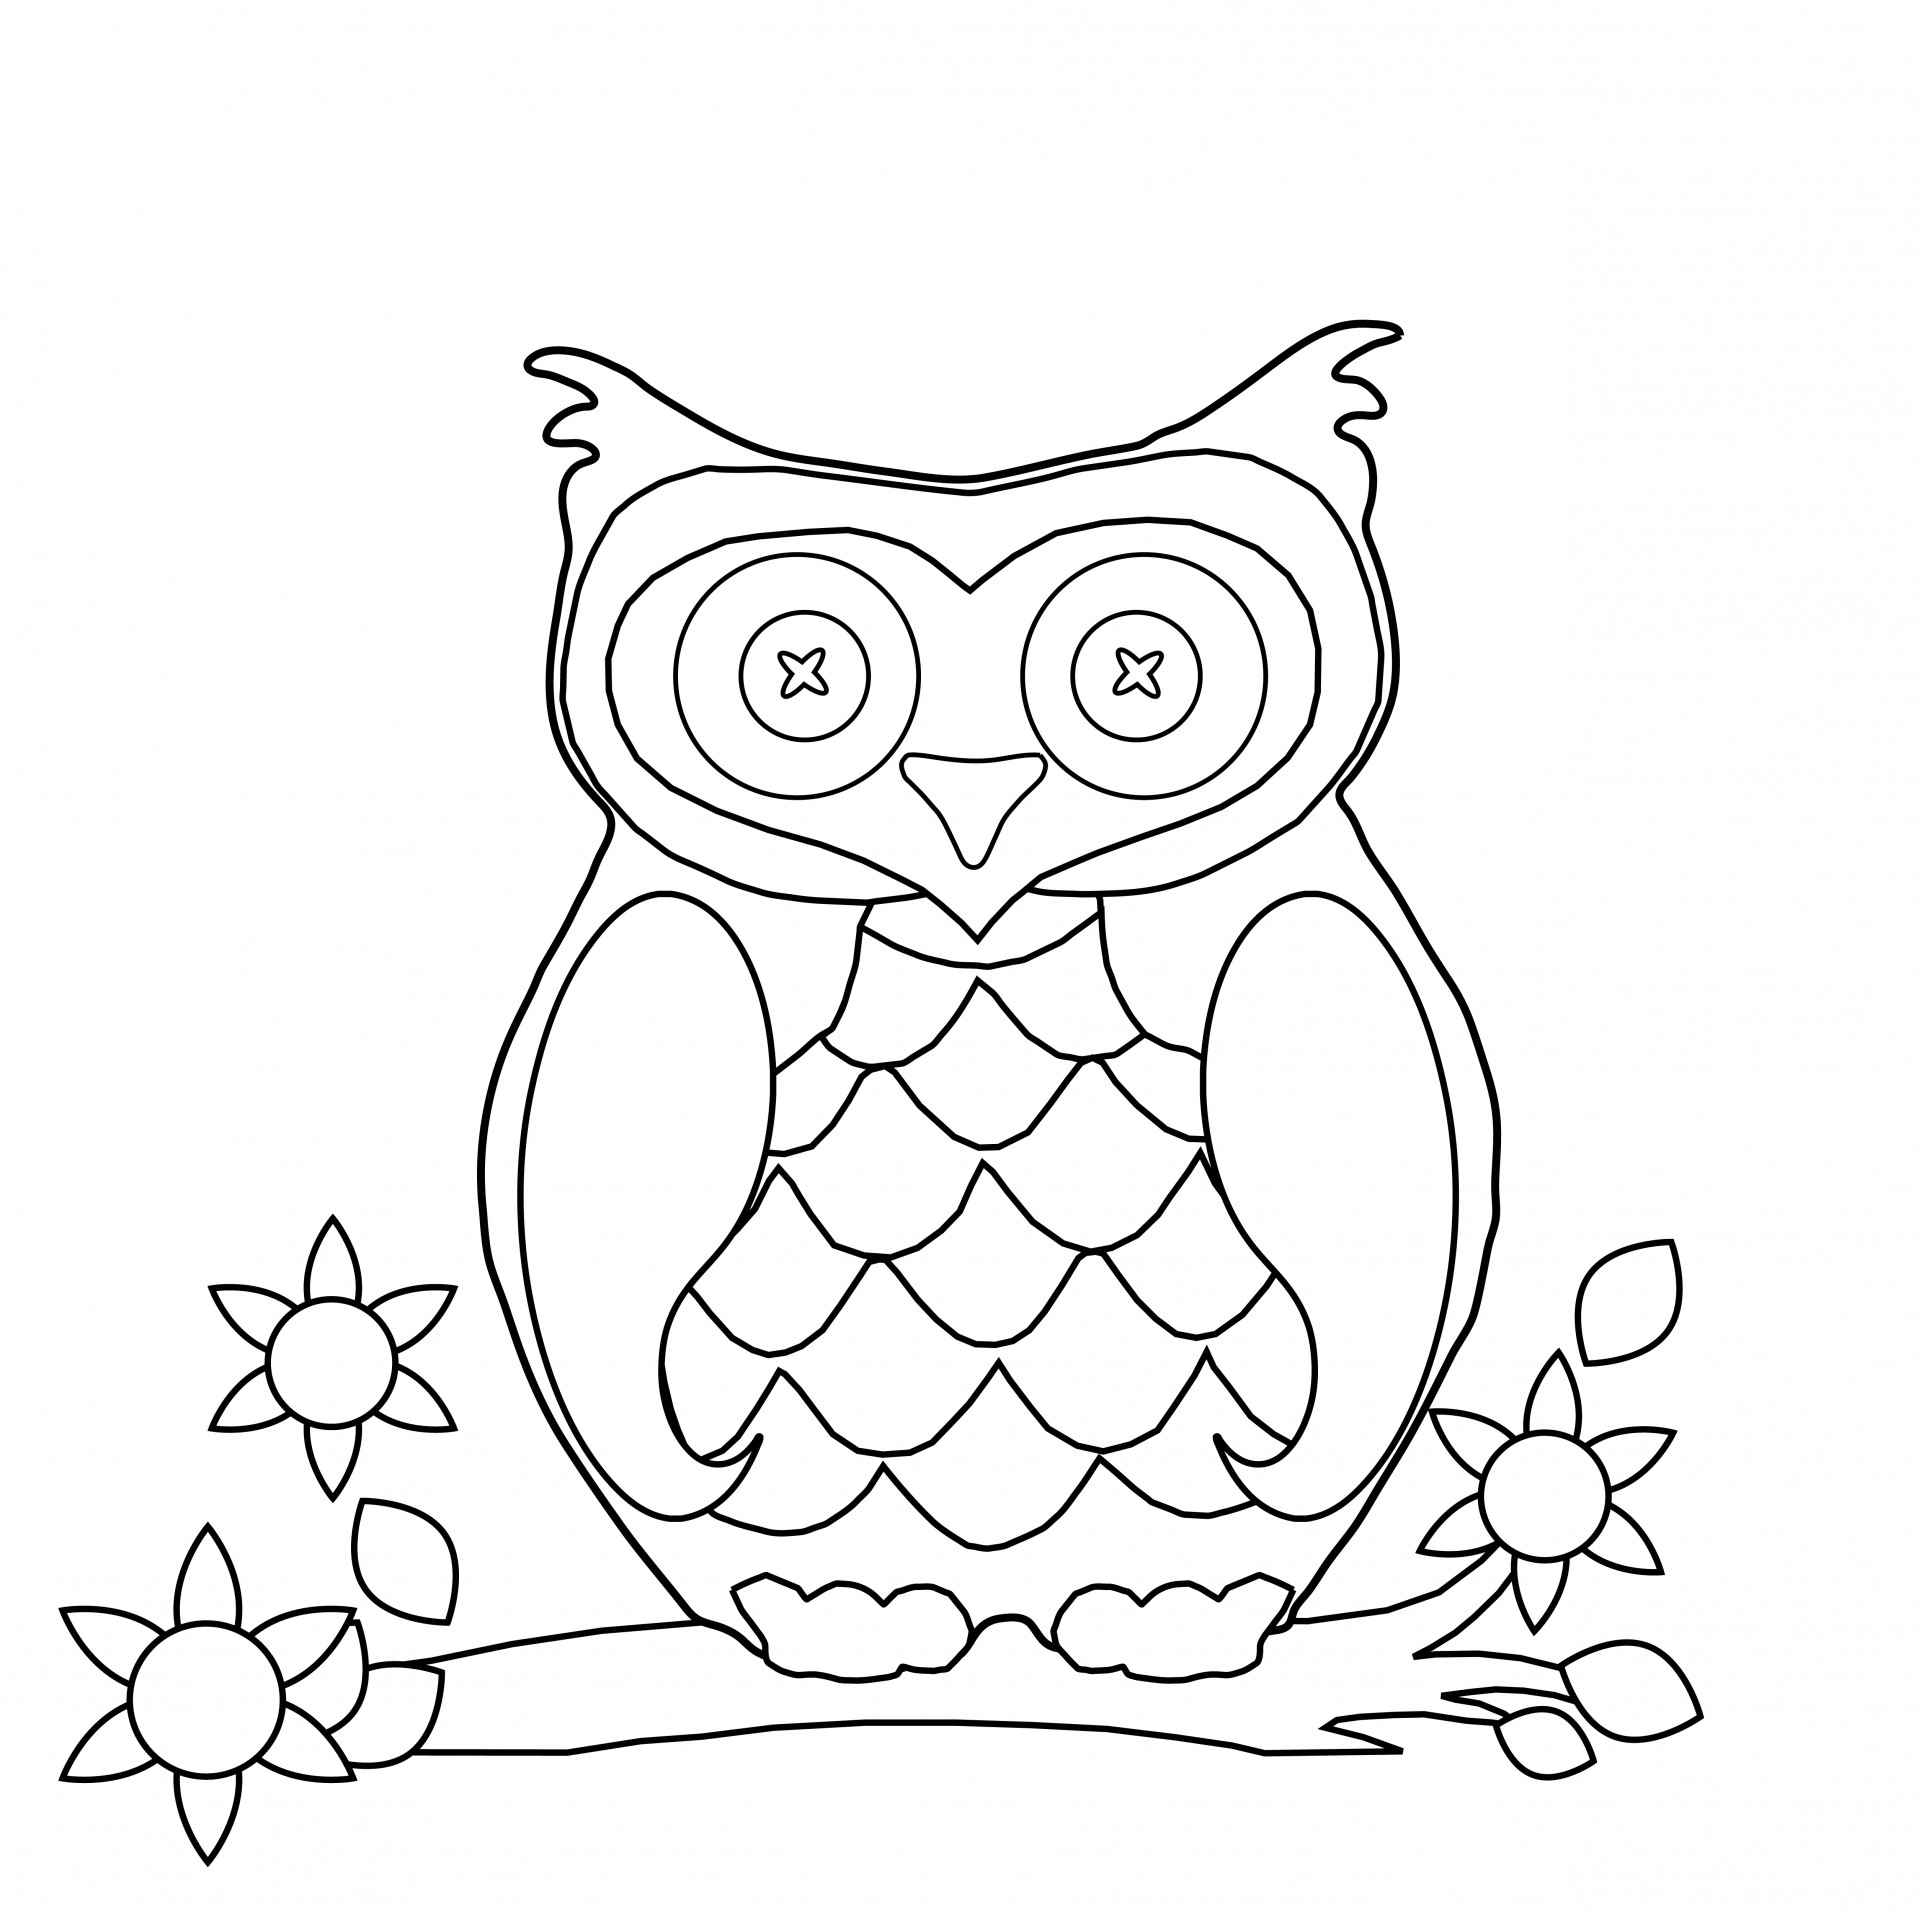 coloring cartoon clipart make any picture a coloring page with ipiccy ipiccy coloring cartoon clipart